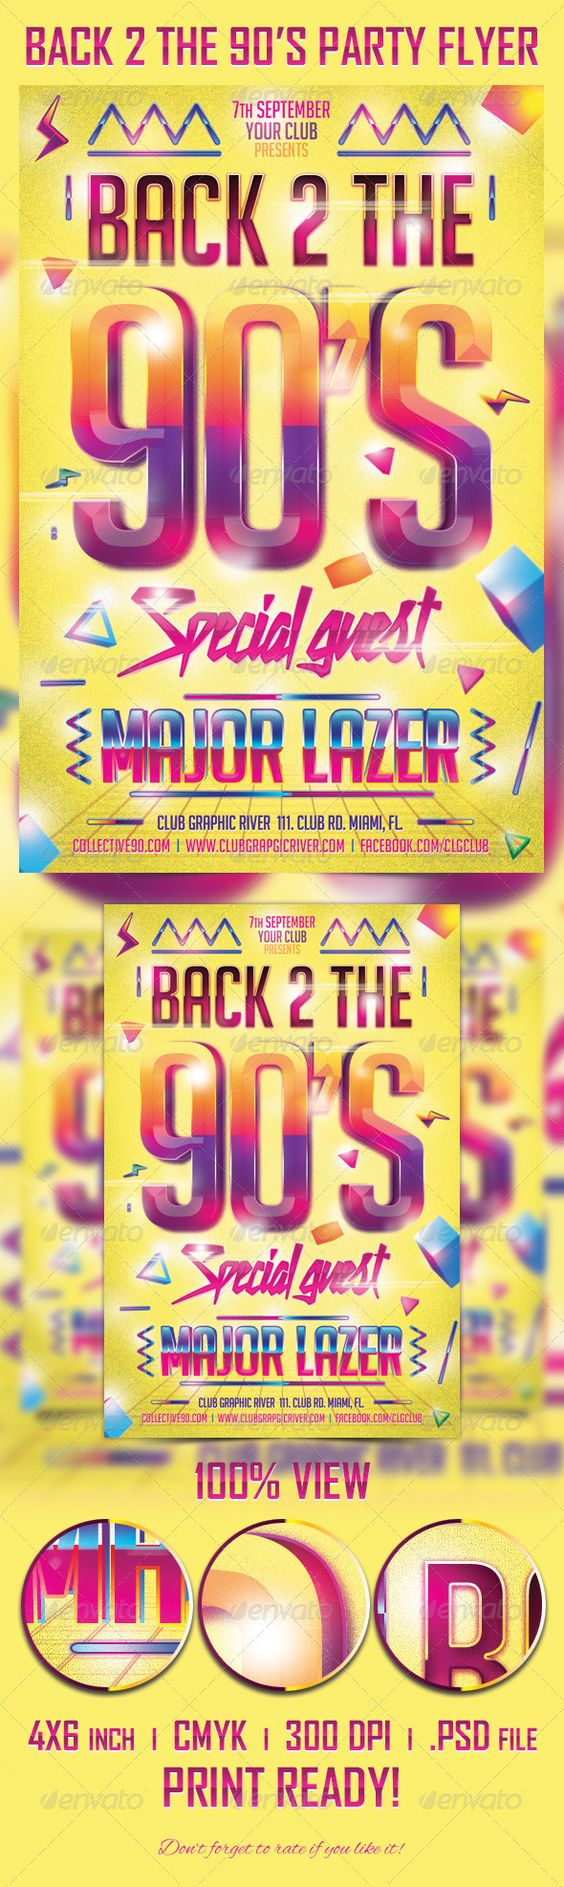 90s party party flyer and flyer template on pinterest for Poster template 90 x 120cm